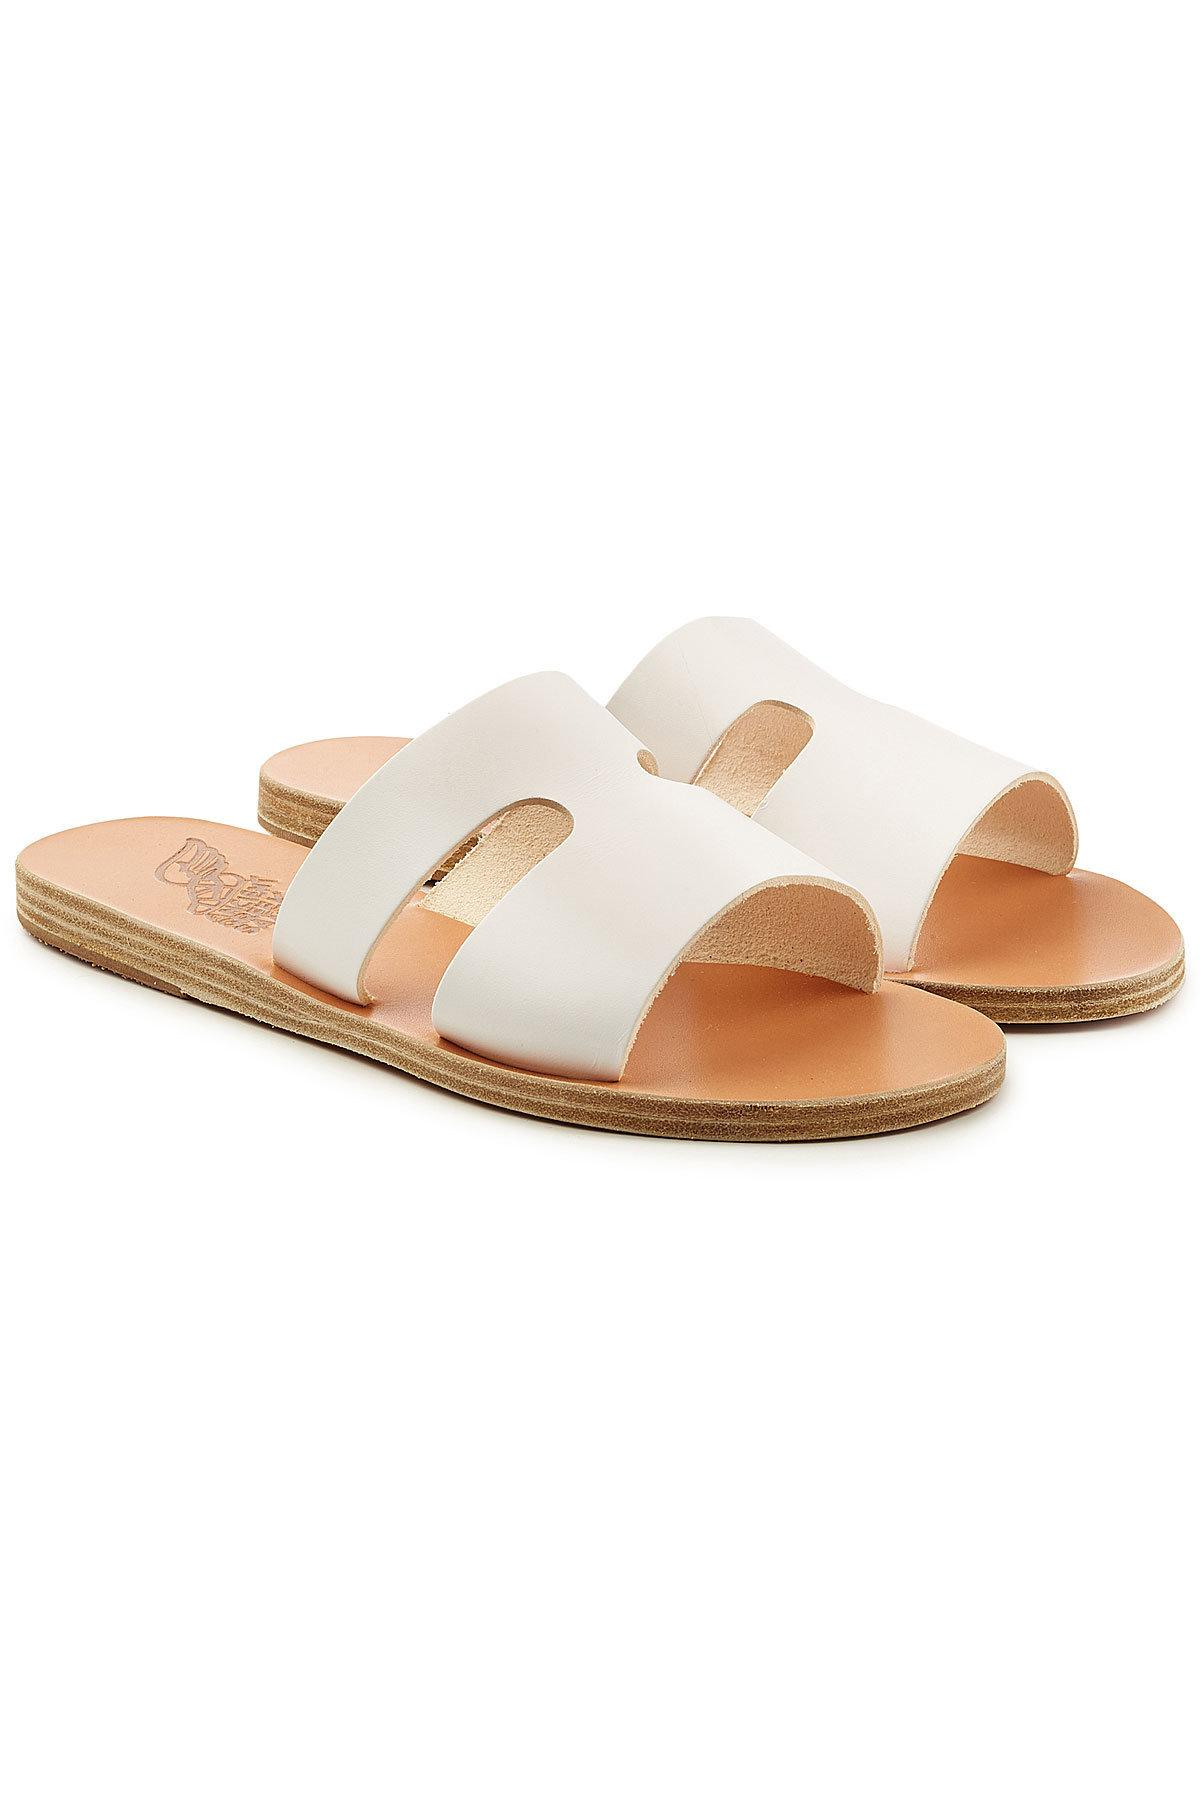 Ancient Greek Sandals Leather Sandals In White Modesens